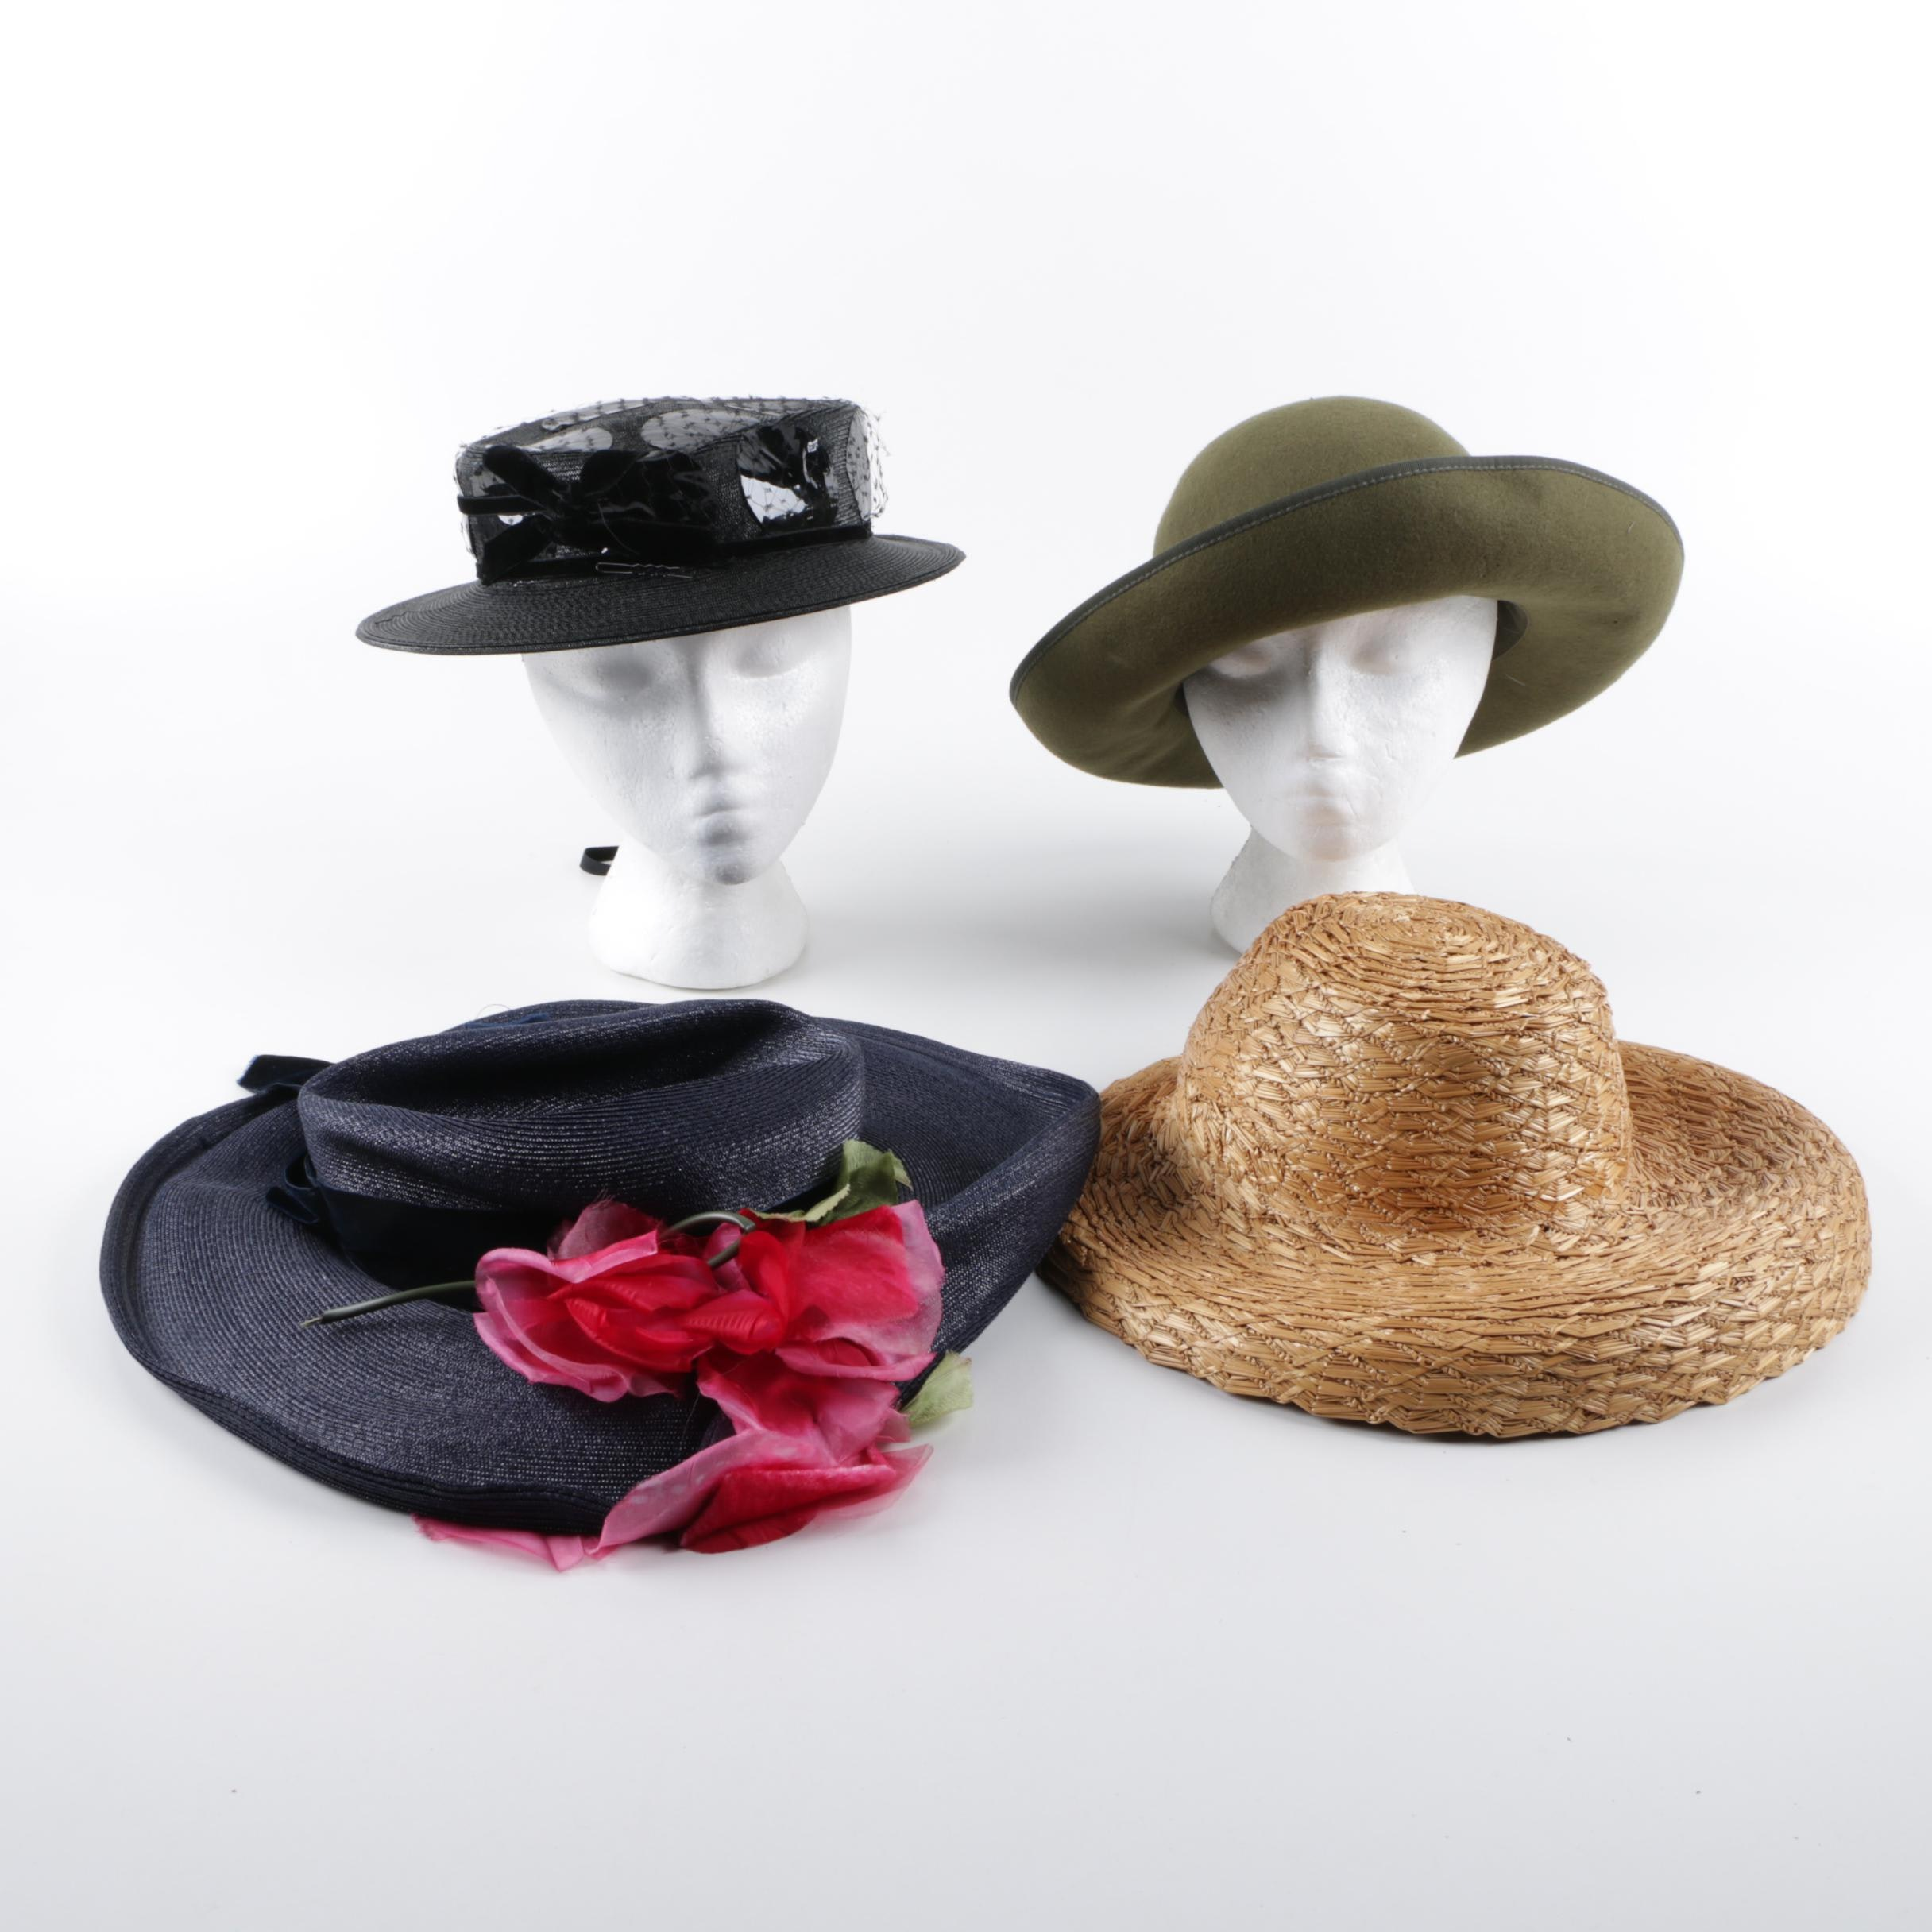 Women's Vintage Hats Featuring Cacharel and Jean Arlett